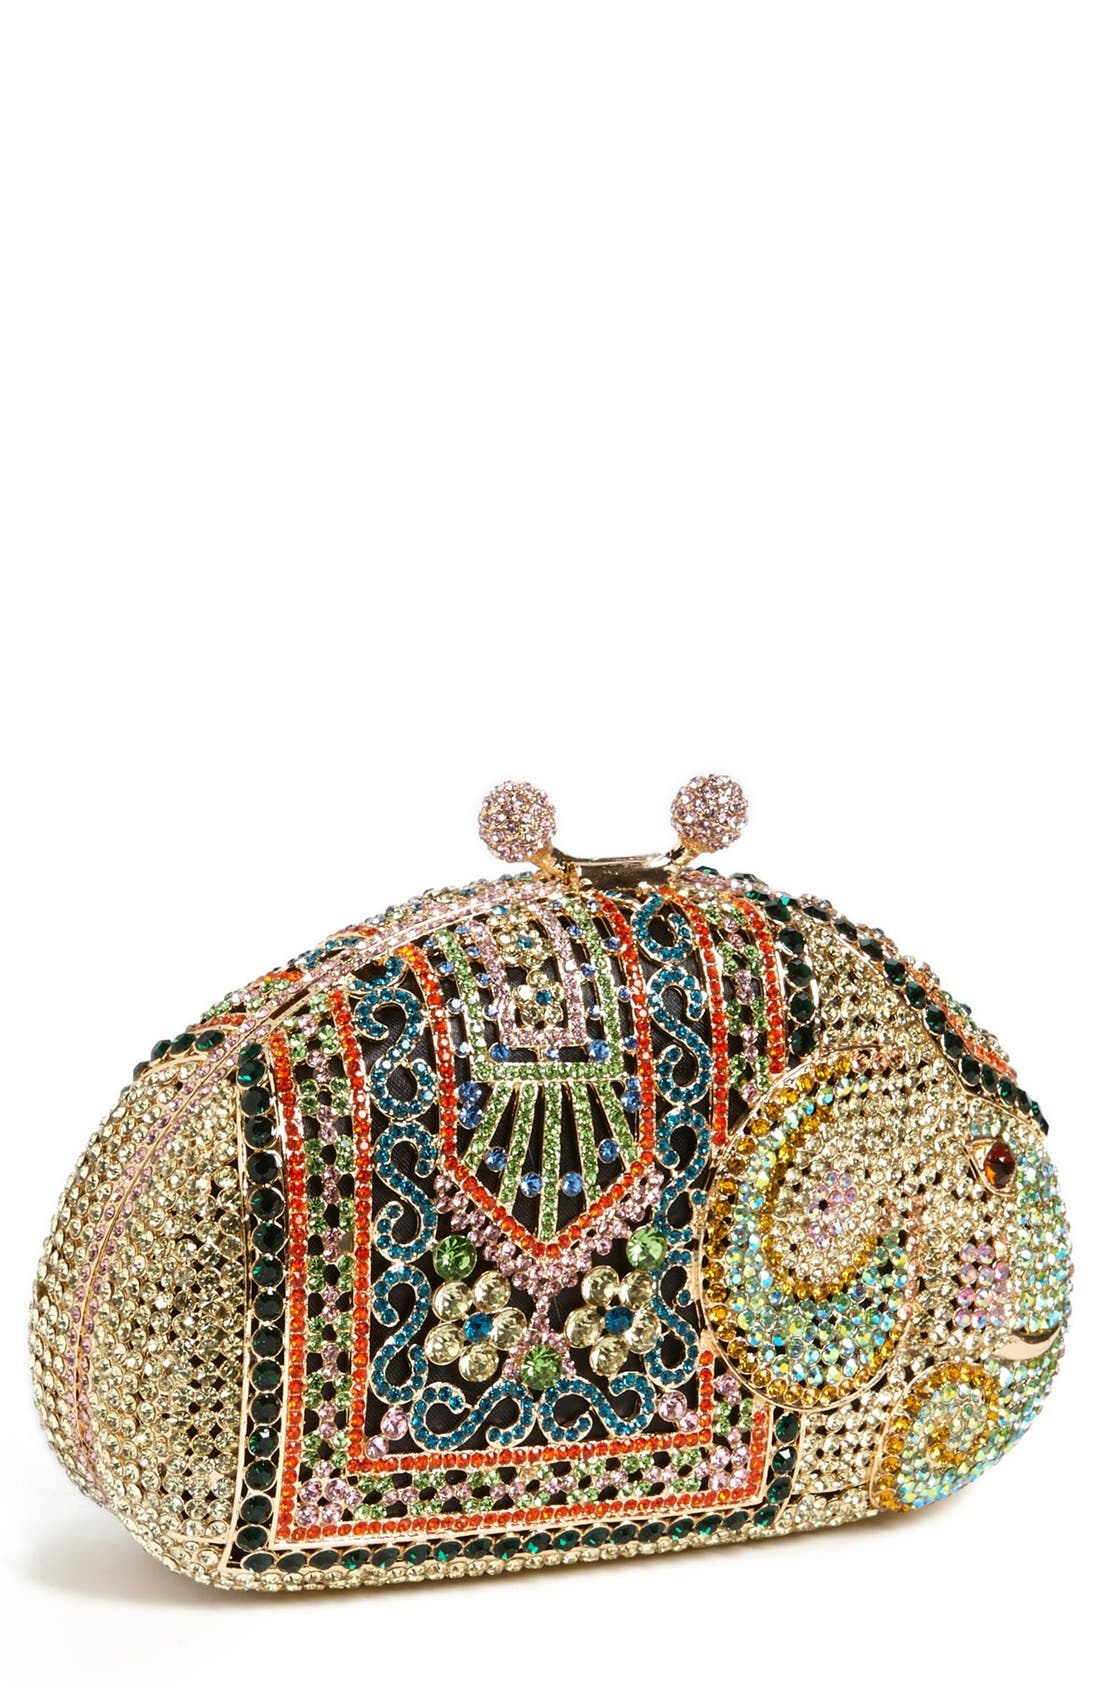 Alternate Image 1 Selected - Natasha Couture 'Elephant' Clutch